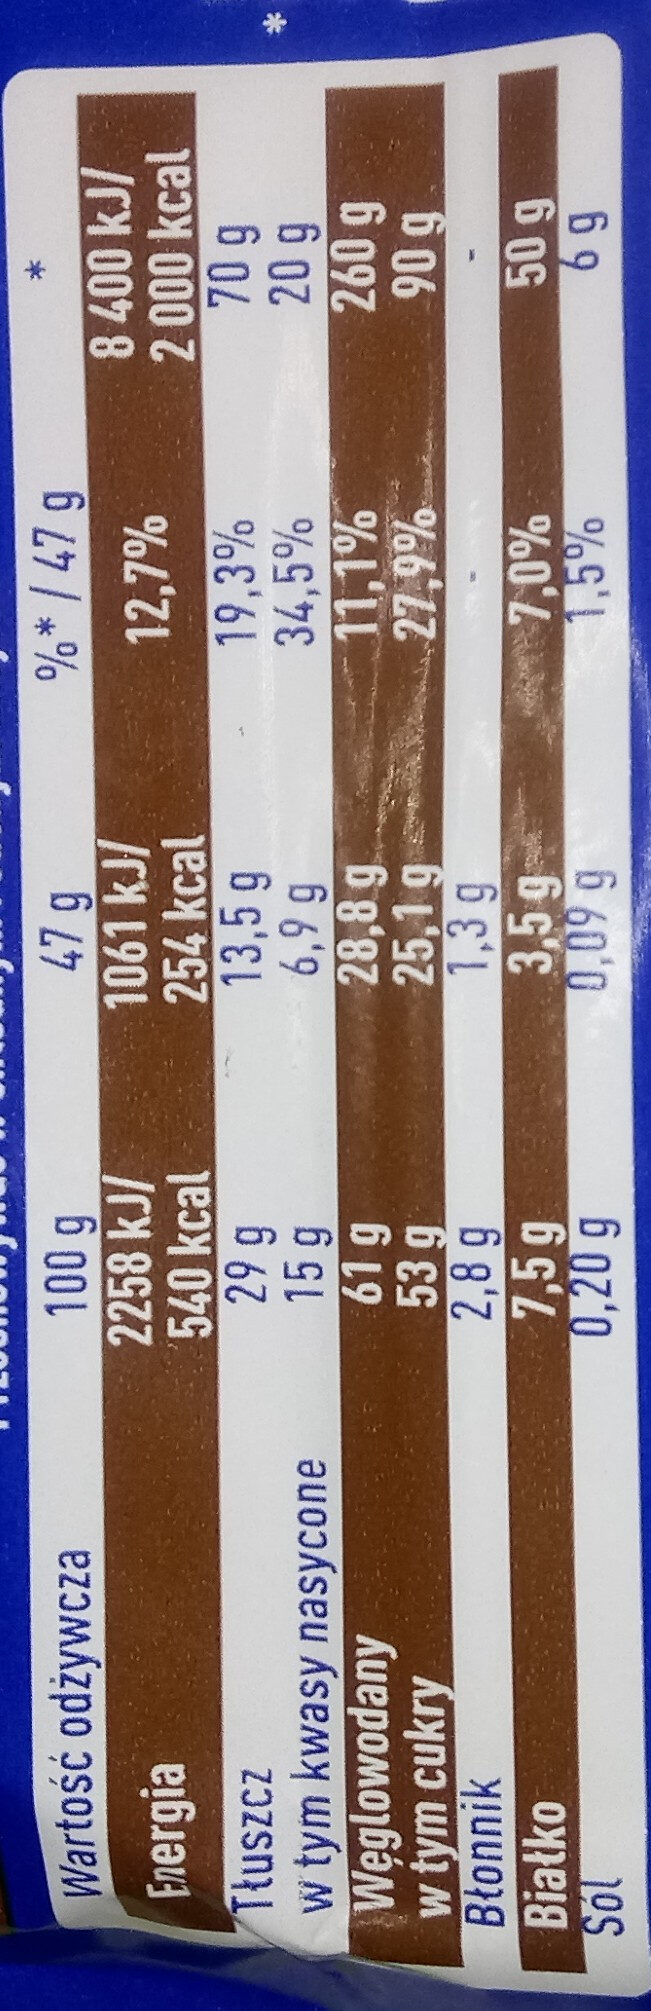 WW - Nutrition facts